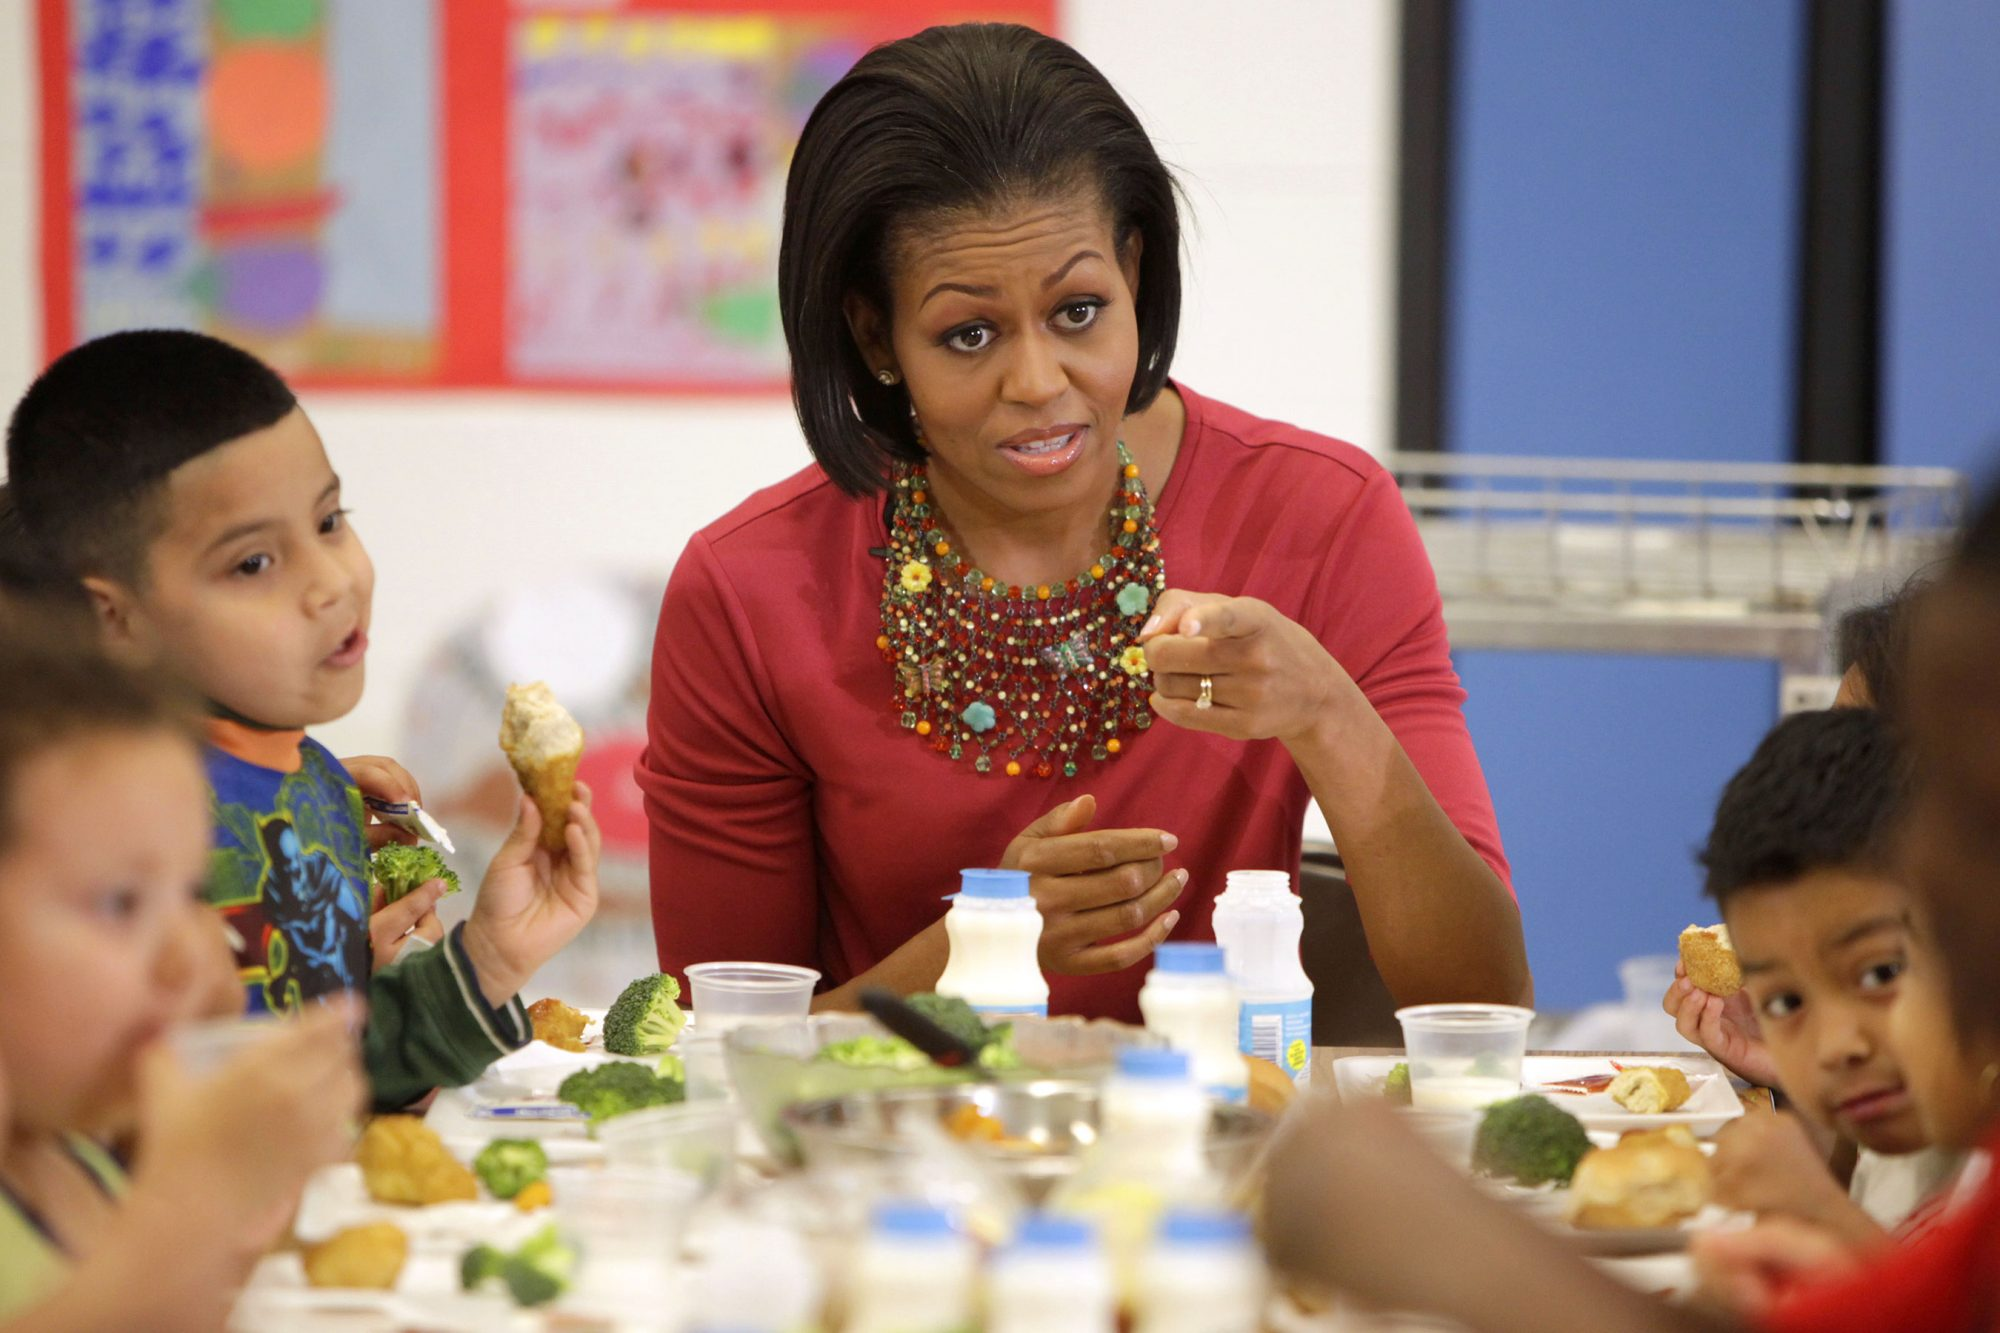 USDA Rolls Back Michelle Obama's School Lunch Regulations, Allowing More Salt and Fat